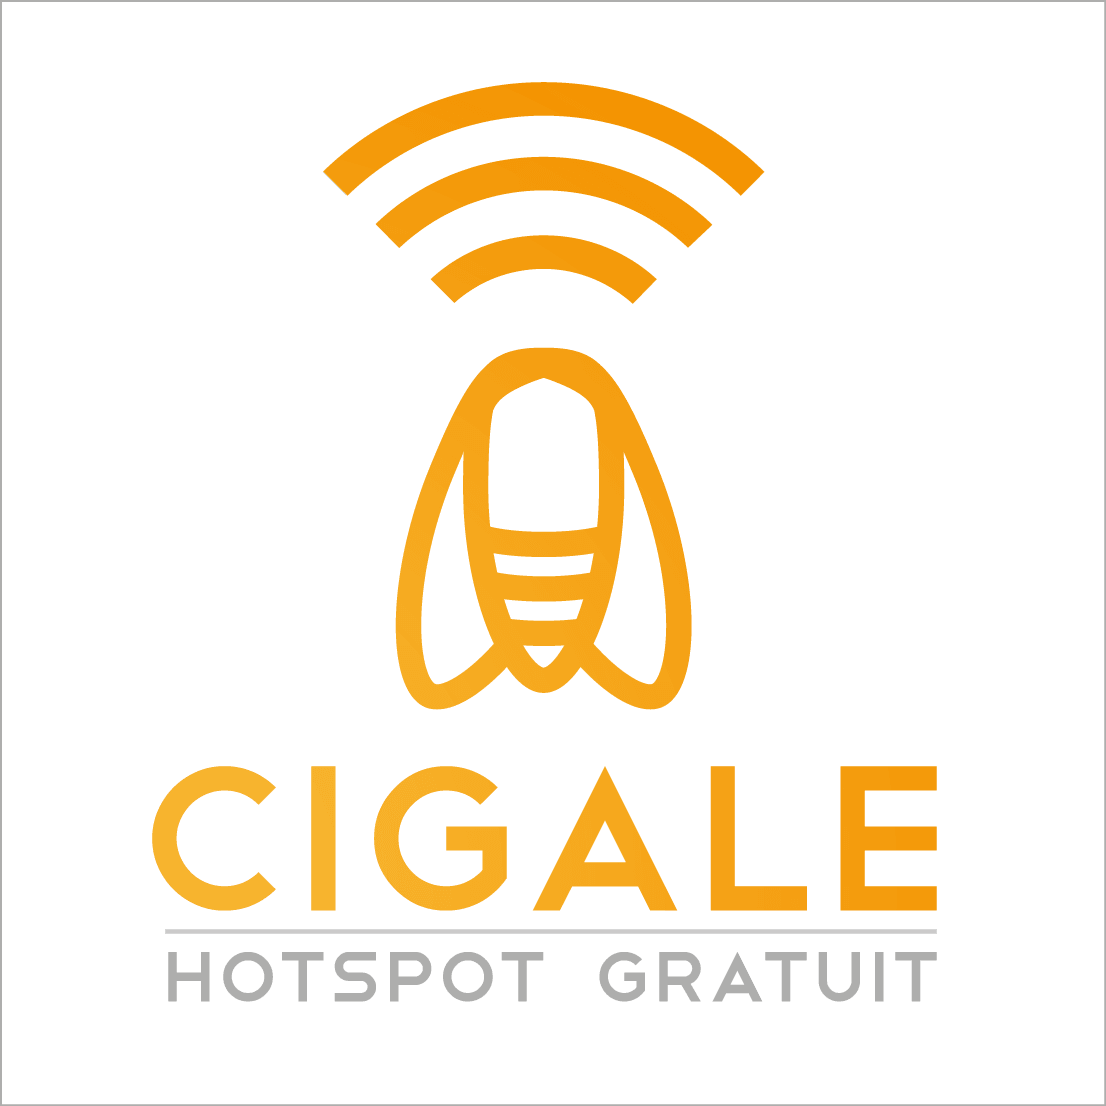 Cigale internet